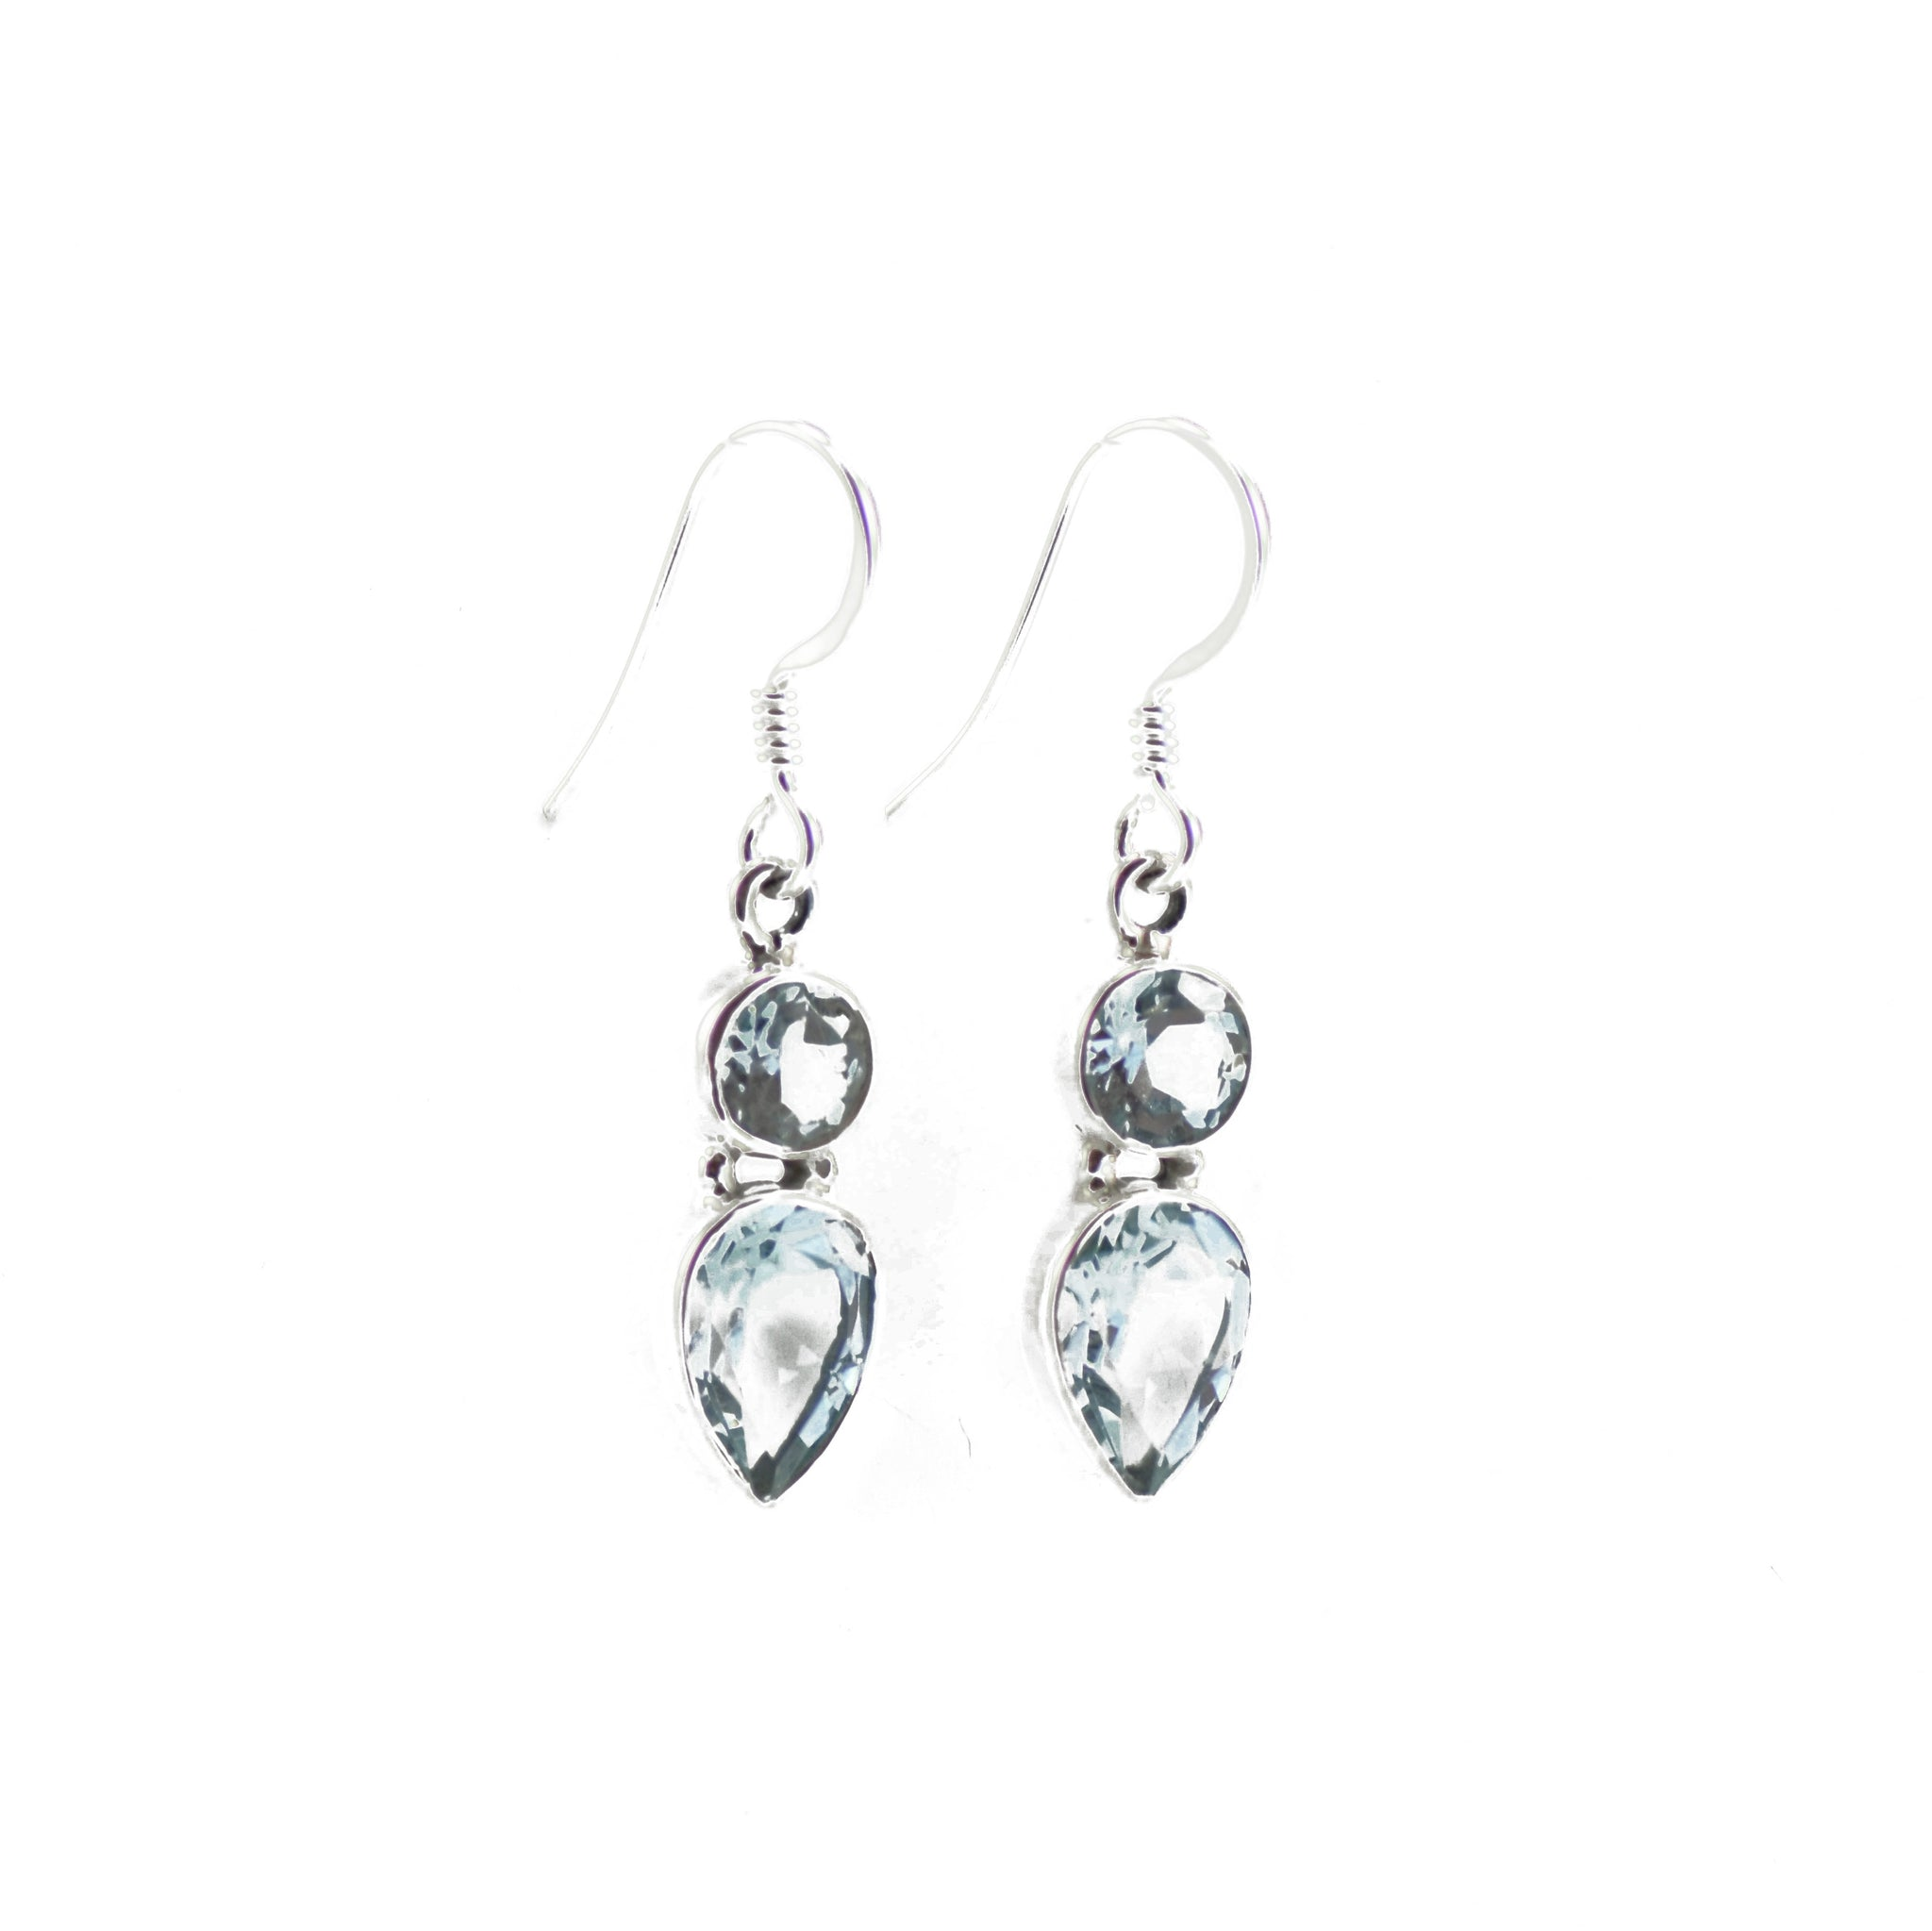 Lemniscate Blue Topaz Silver Dropped Earrings